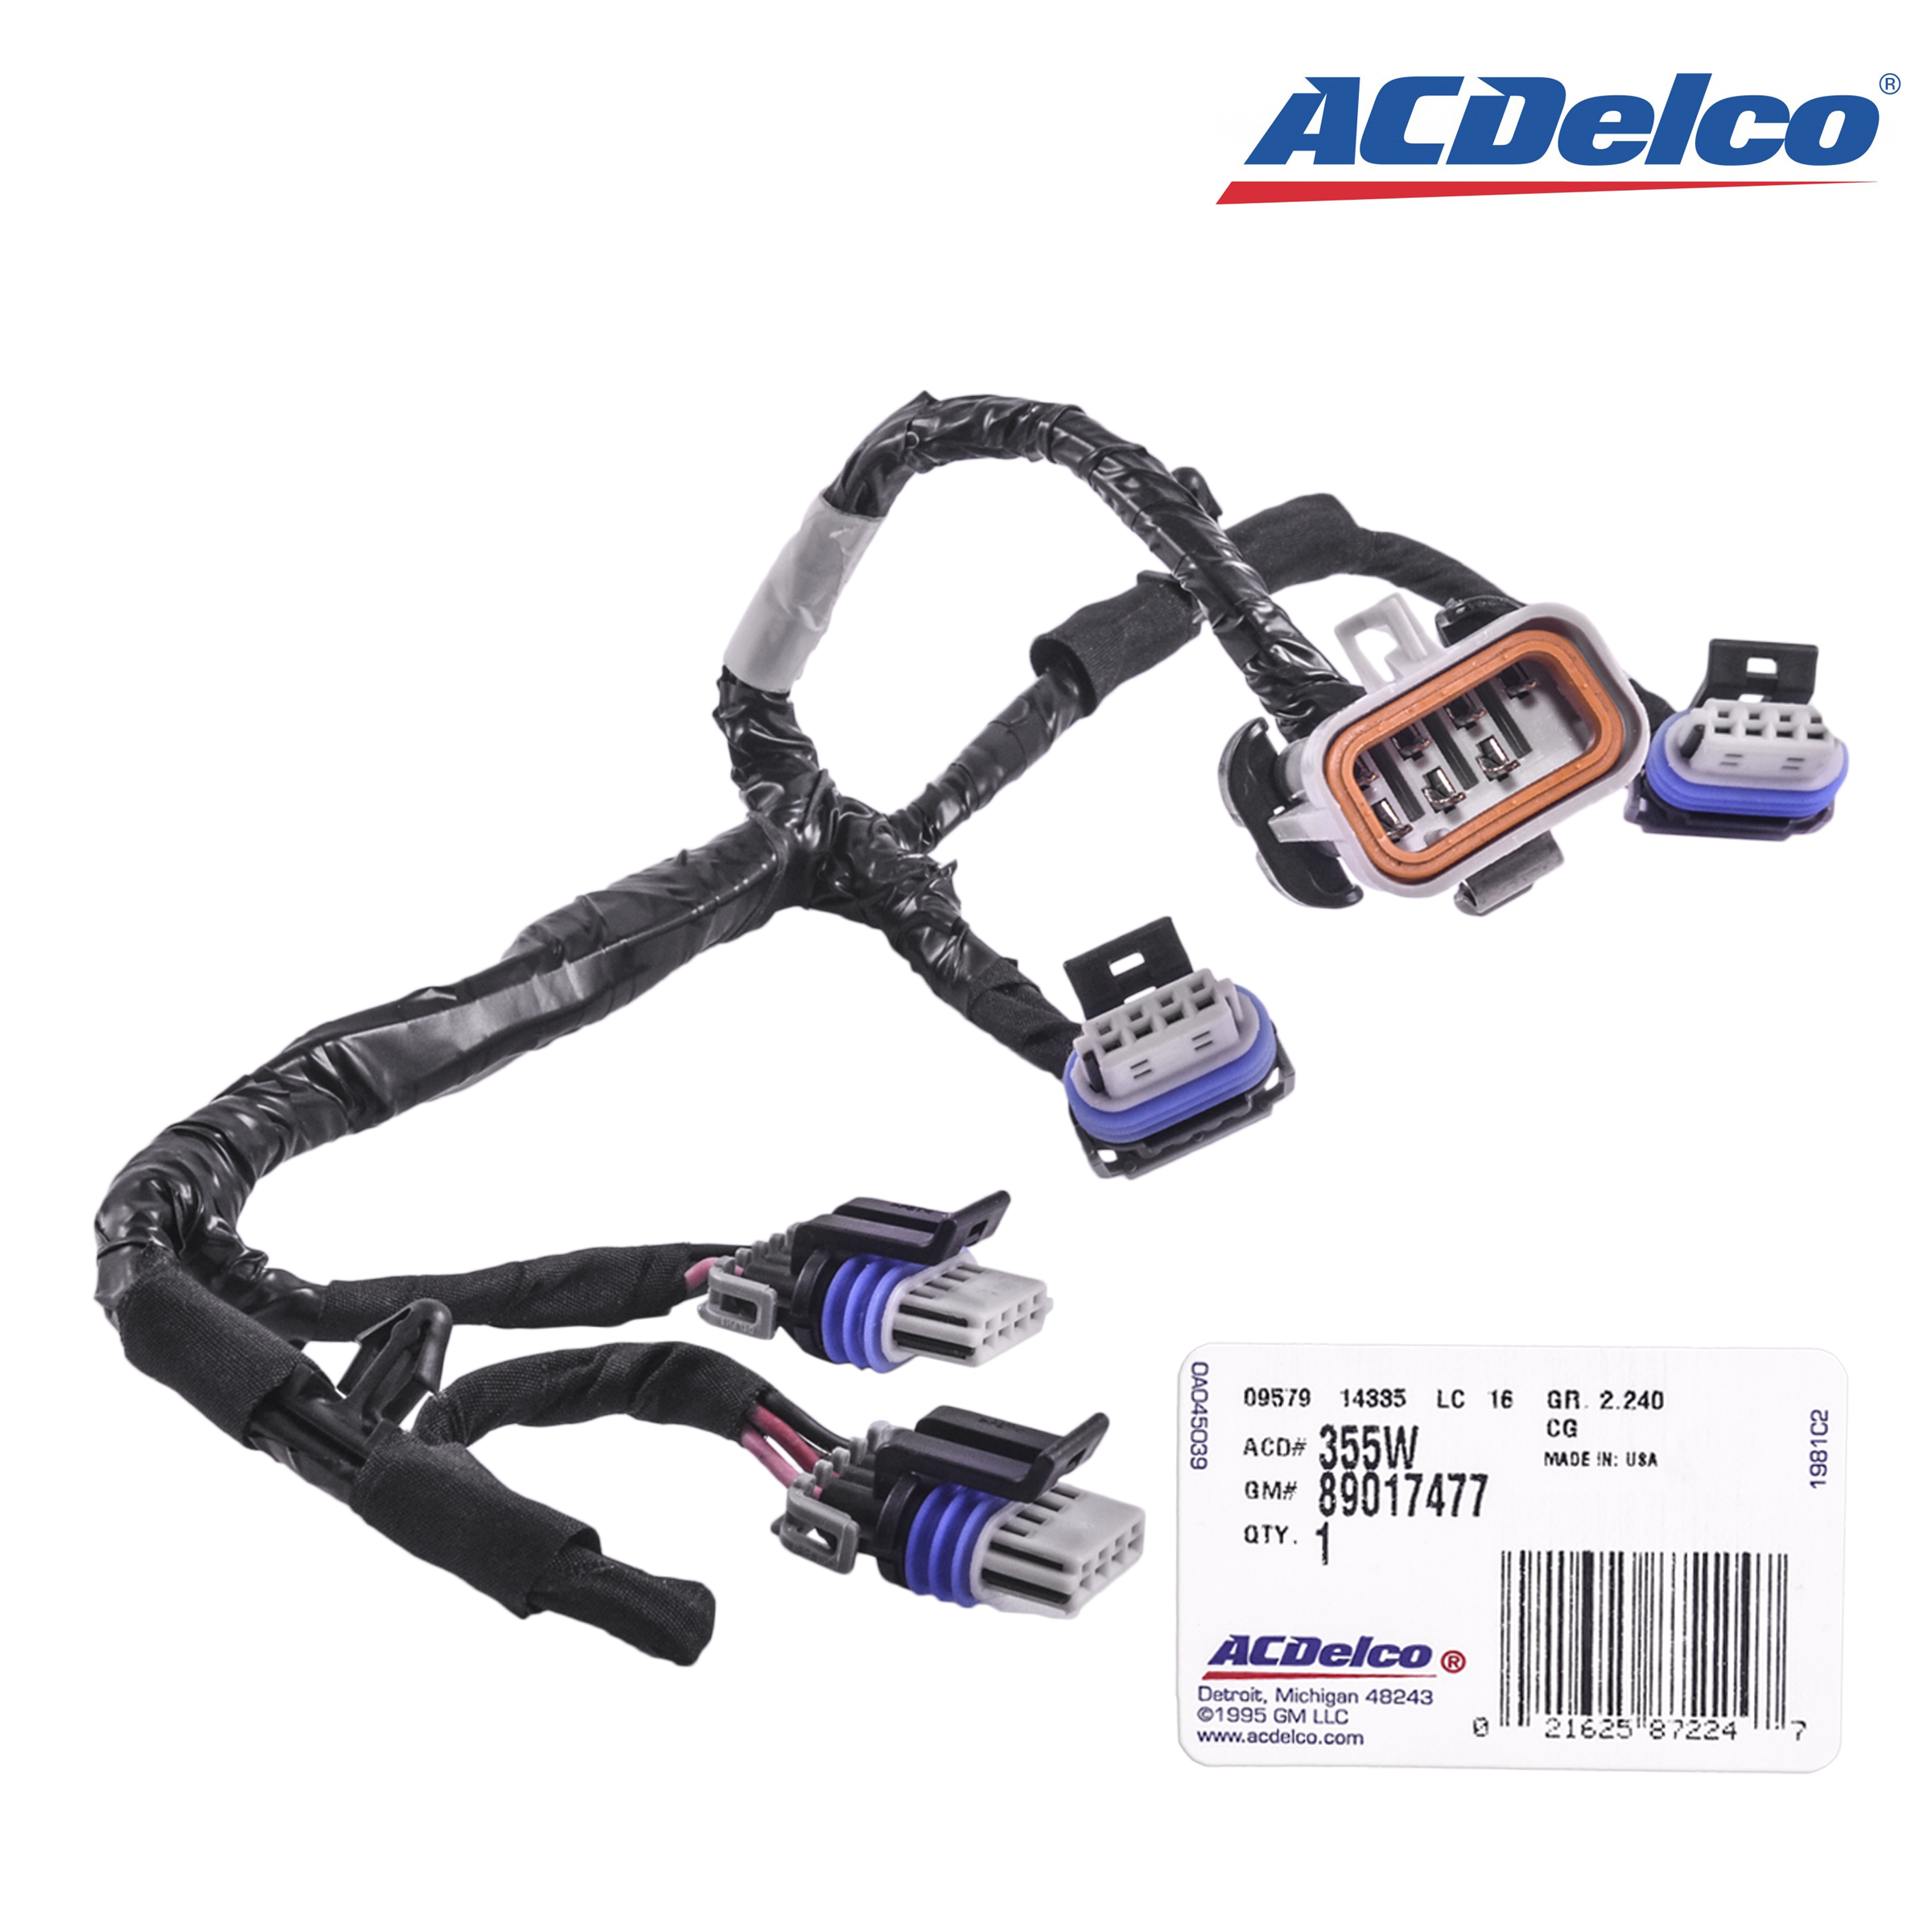 Coils Wiring Harness Gm on obd2 to obd1 jumper harness, gm wiring alternator, gm wiring connectors, gm alternator harness, radio harness, gm wiring gauge,